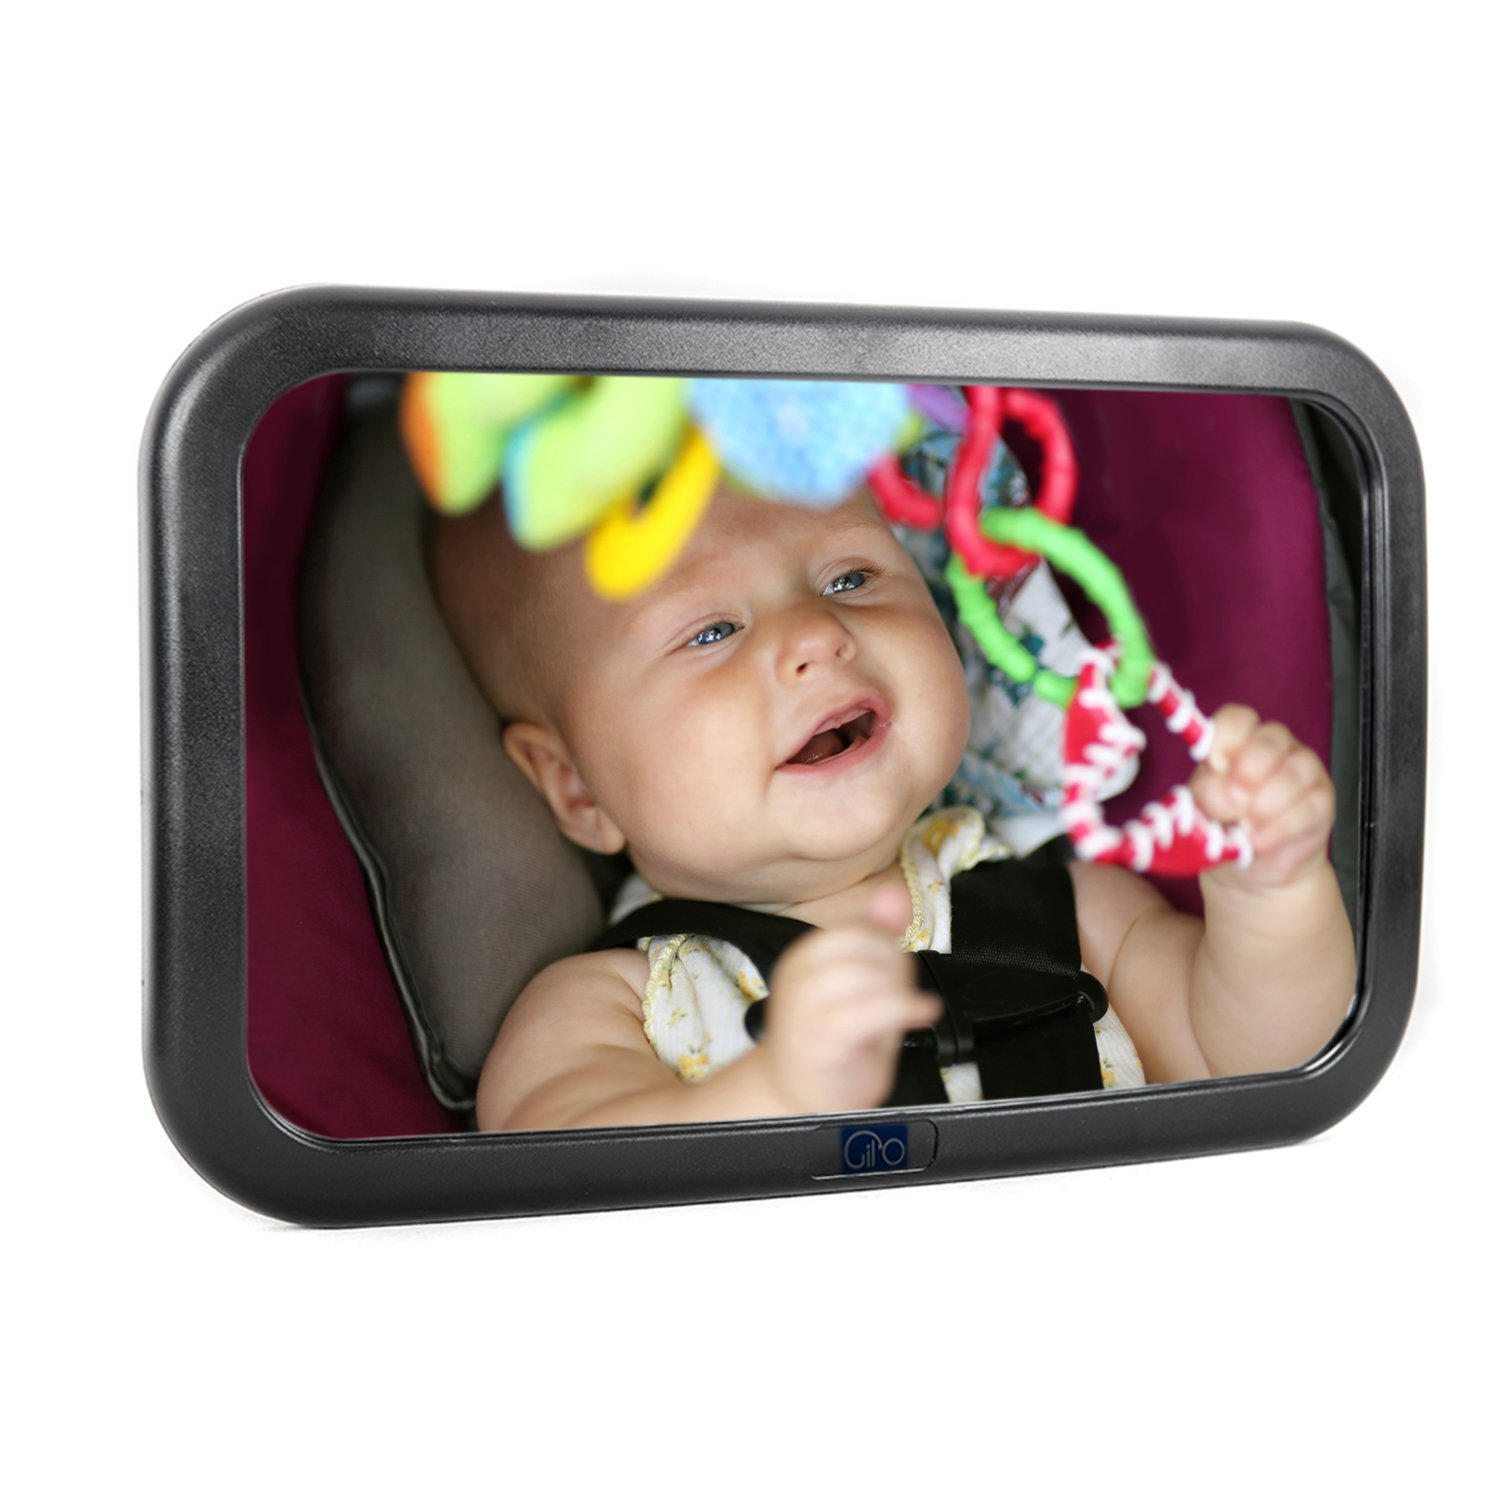 Baby Car Mirror for Back Seat - View Rear Facing Infant in Backseat - Shatter proof - Gil'O Gil' O